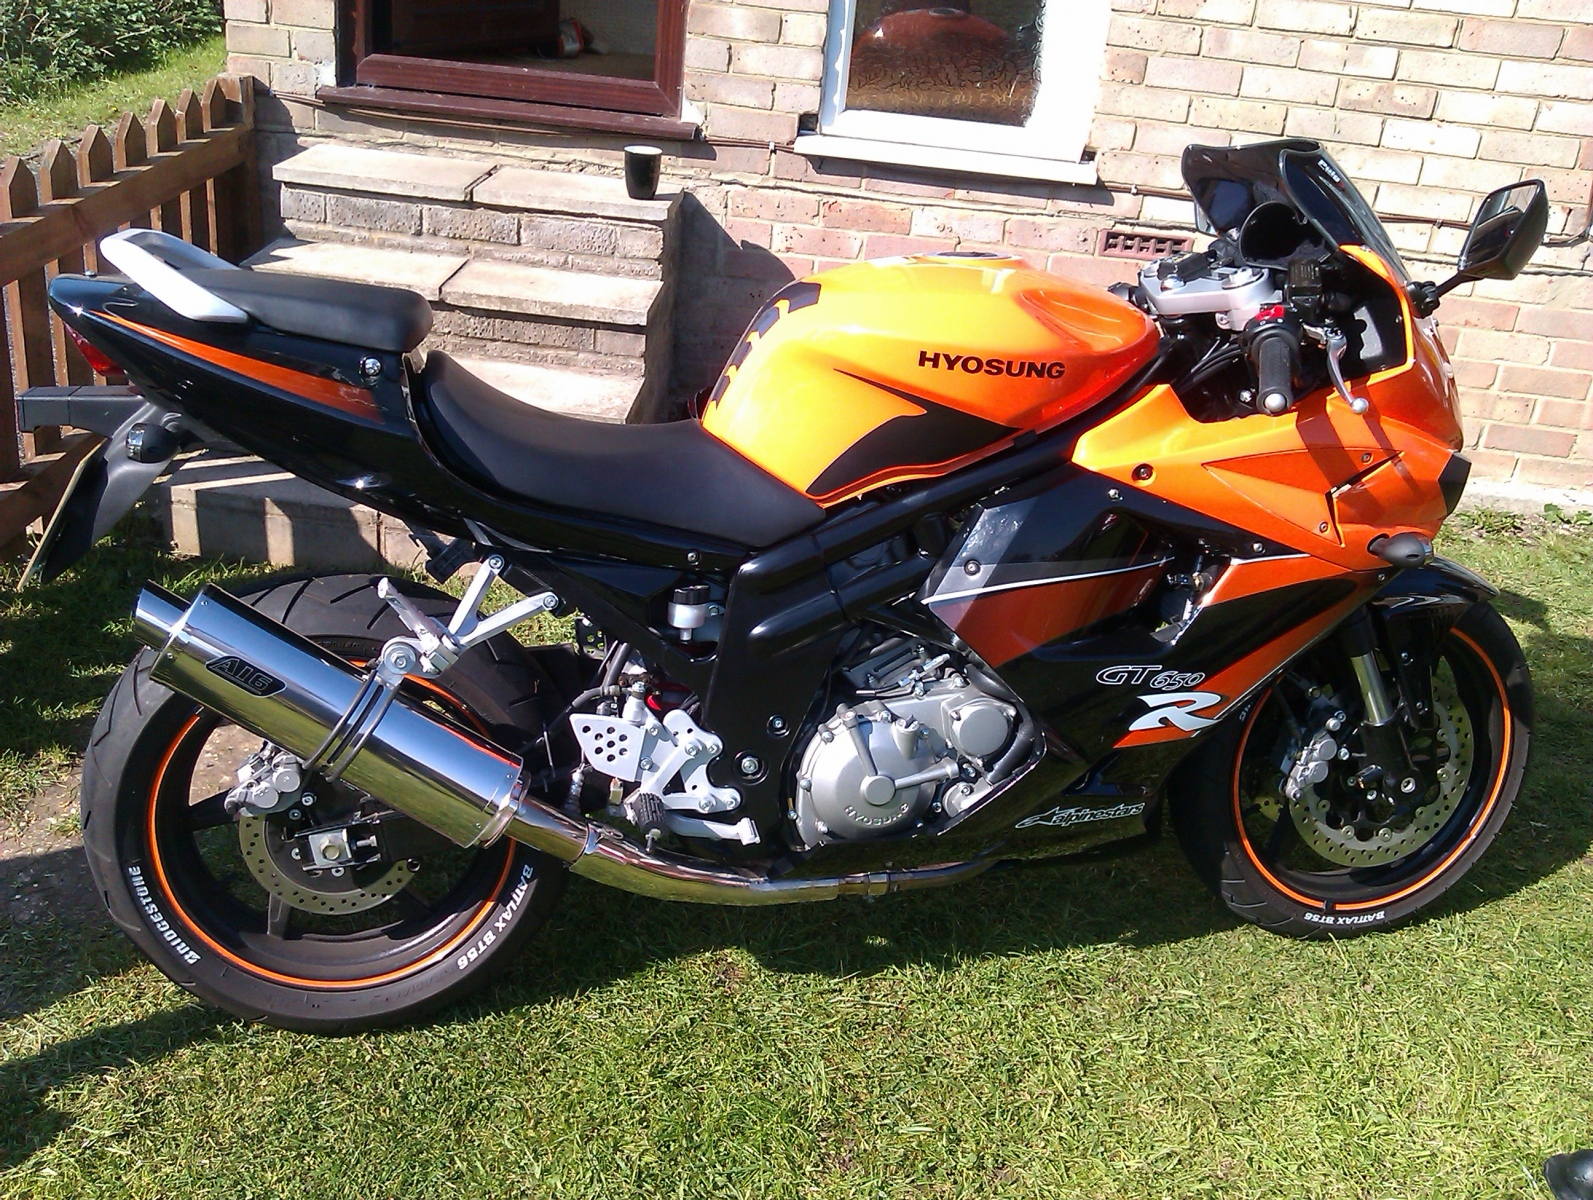 """Hyosung GT650<p>A16 Road Legal Stainless Exhaust with Slashcut Outlet</p><br><a href=""""https://a16roadnracesupplies.co.uk/product/a16-hyosung-exhausts/"""">Buy now!</a>"""